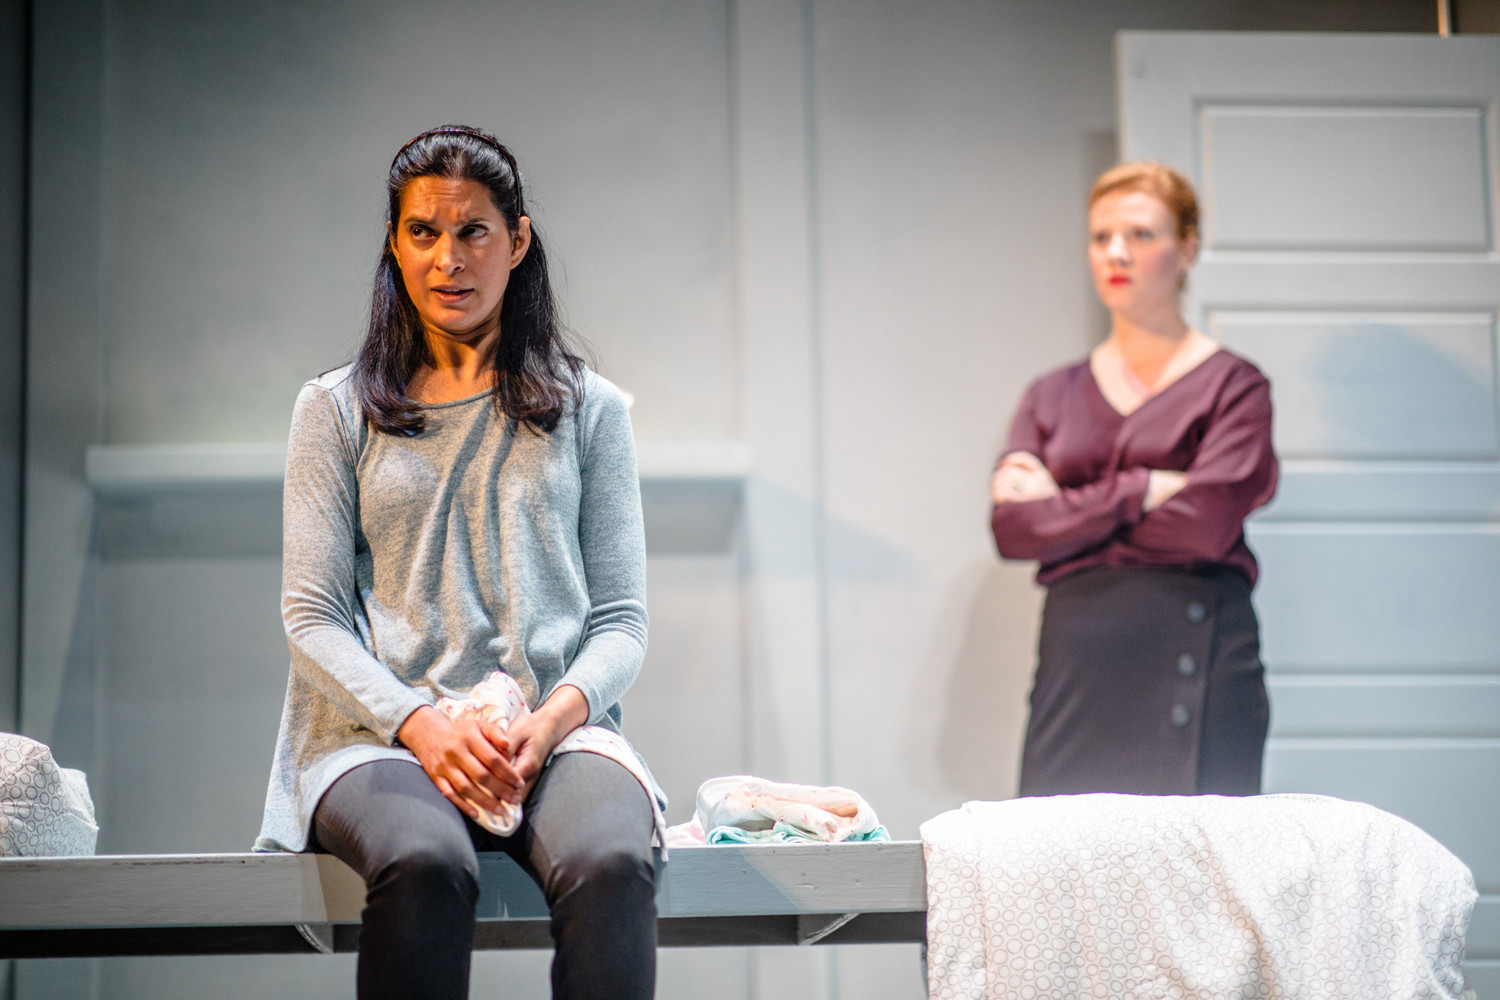 BWW Review: OTHER PEOPLE'S CHILDREN at Centaur Theatre - Care and Carelessness